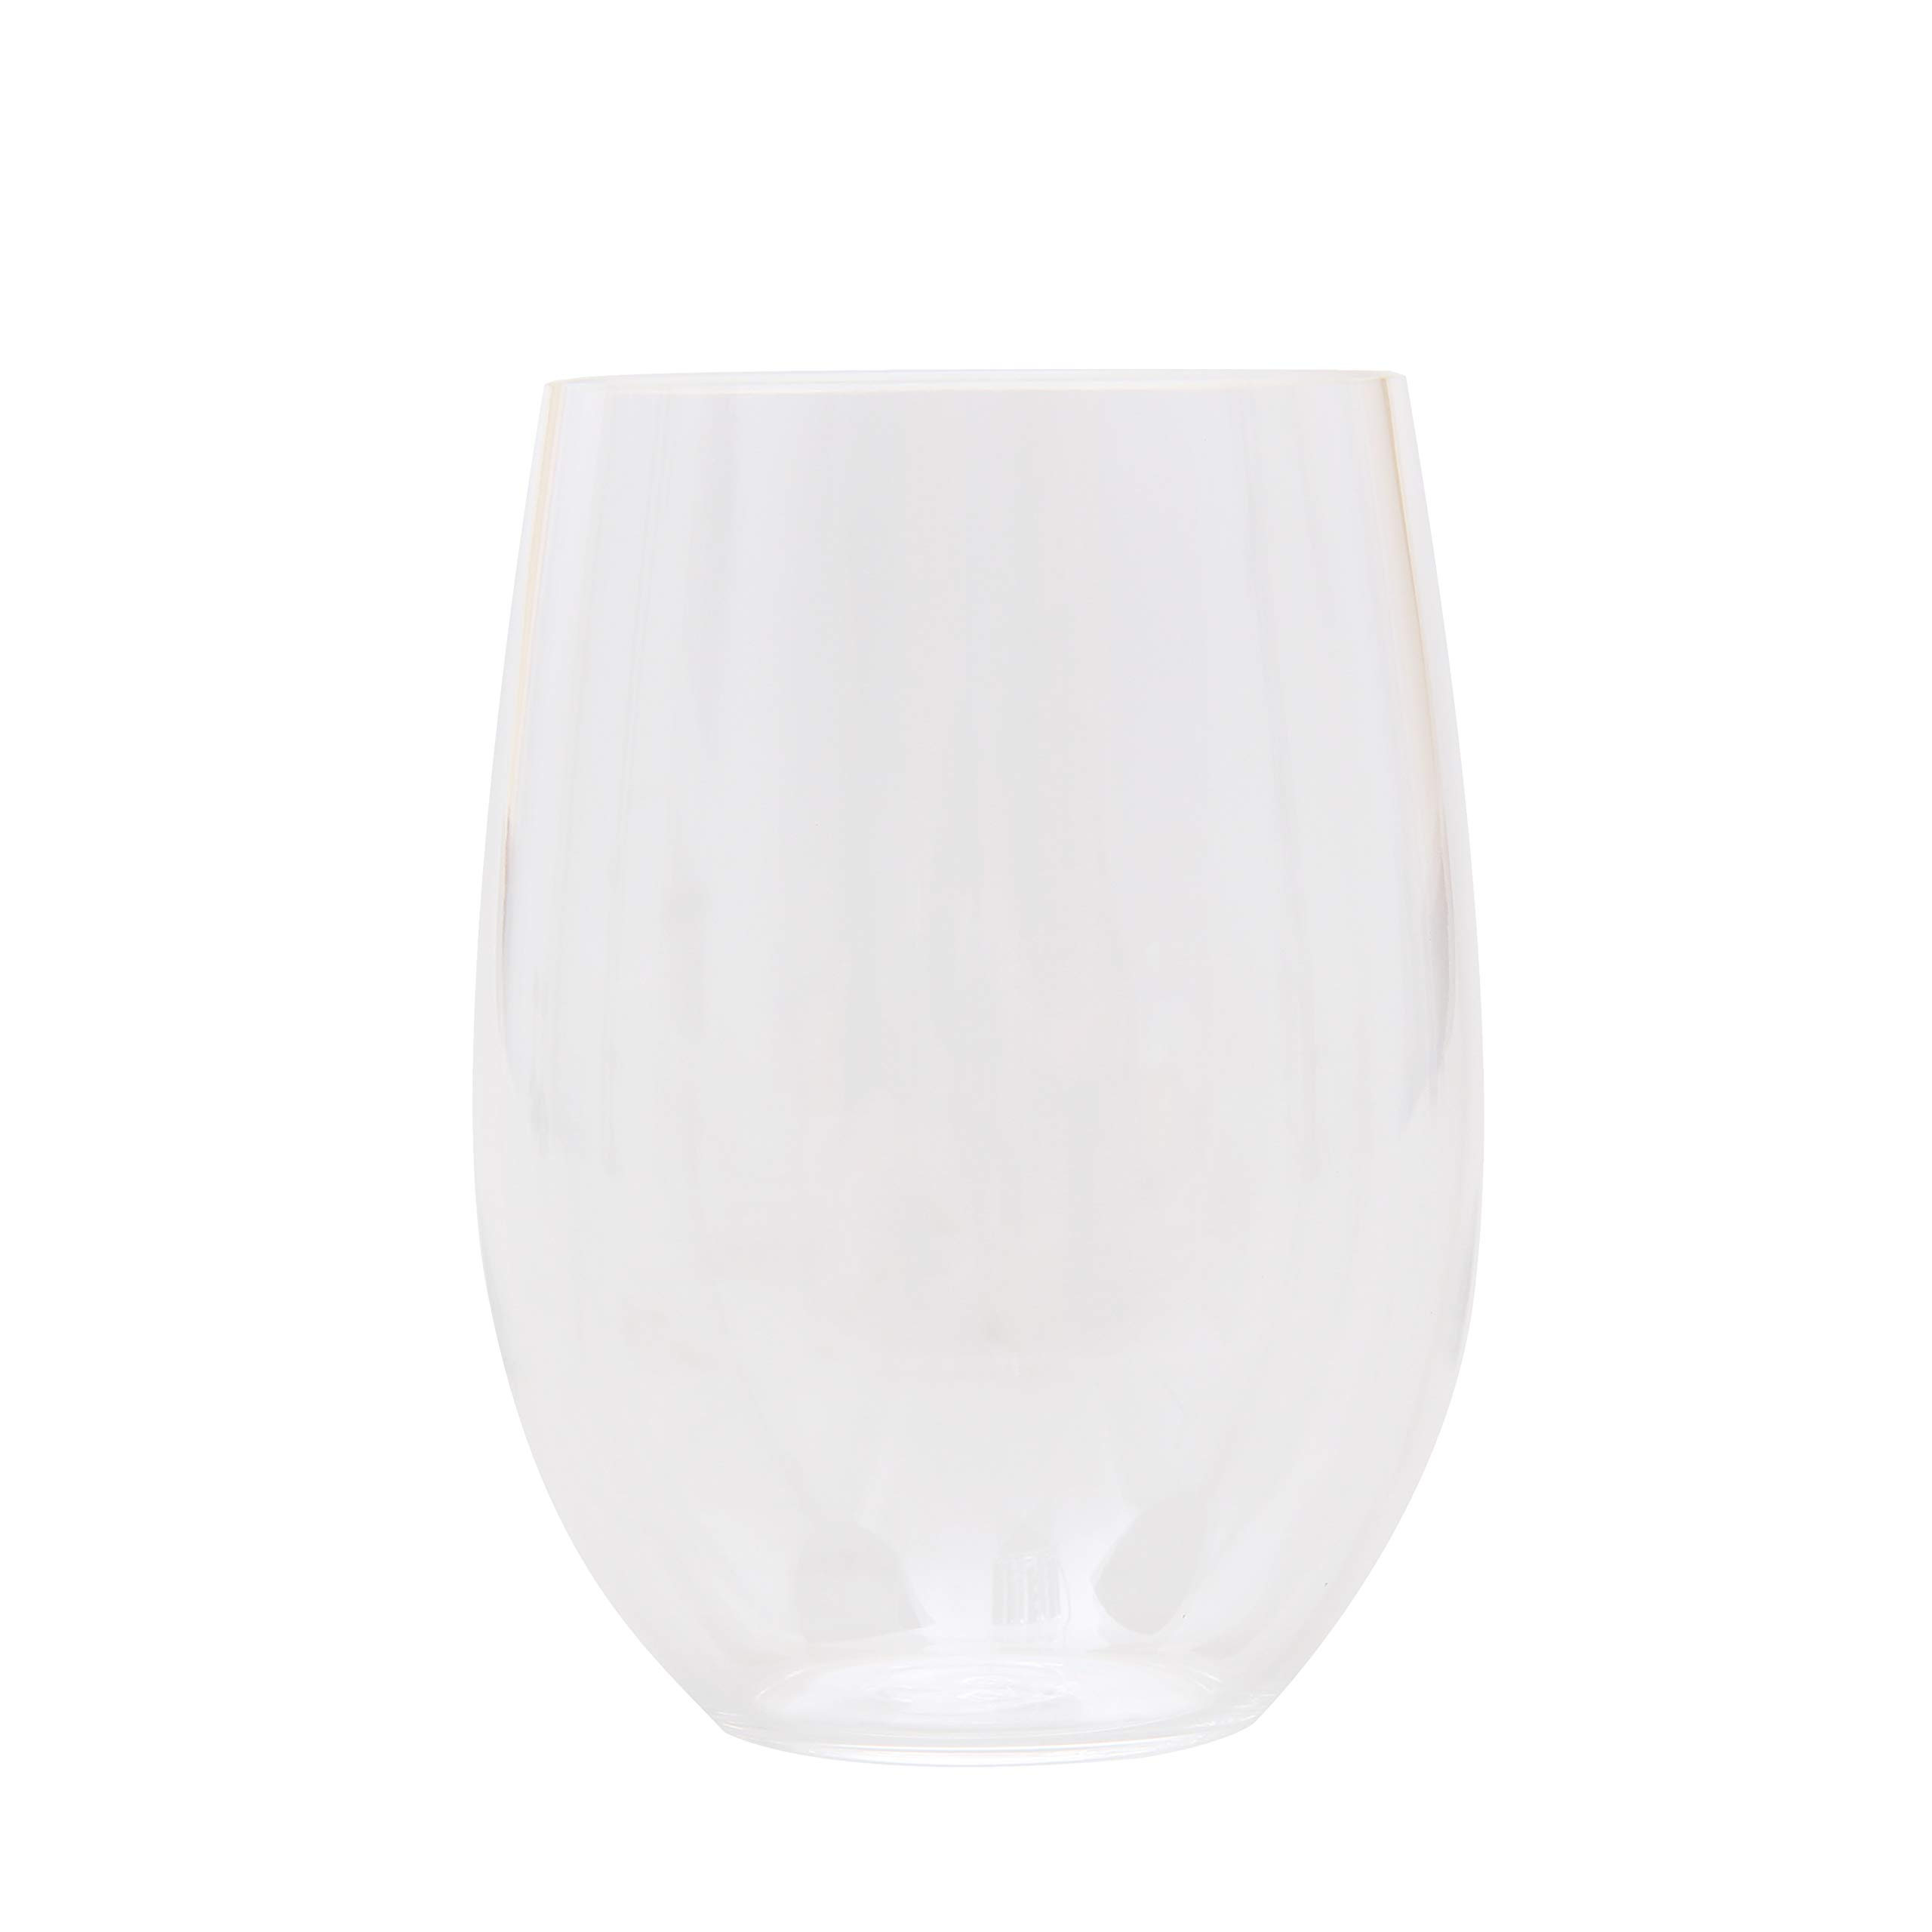 Mainstays 6-Piece Melamine Stemless Wine Set, White by First Design Global, Inc. (Image #2)